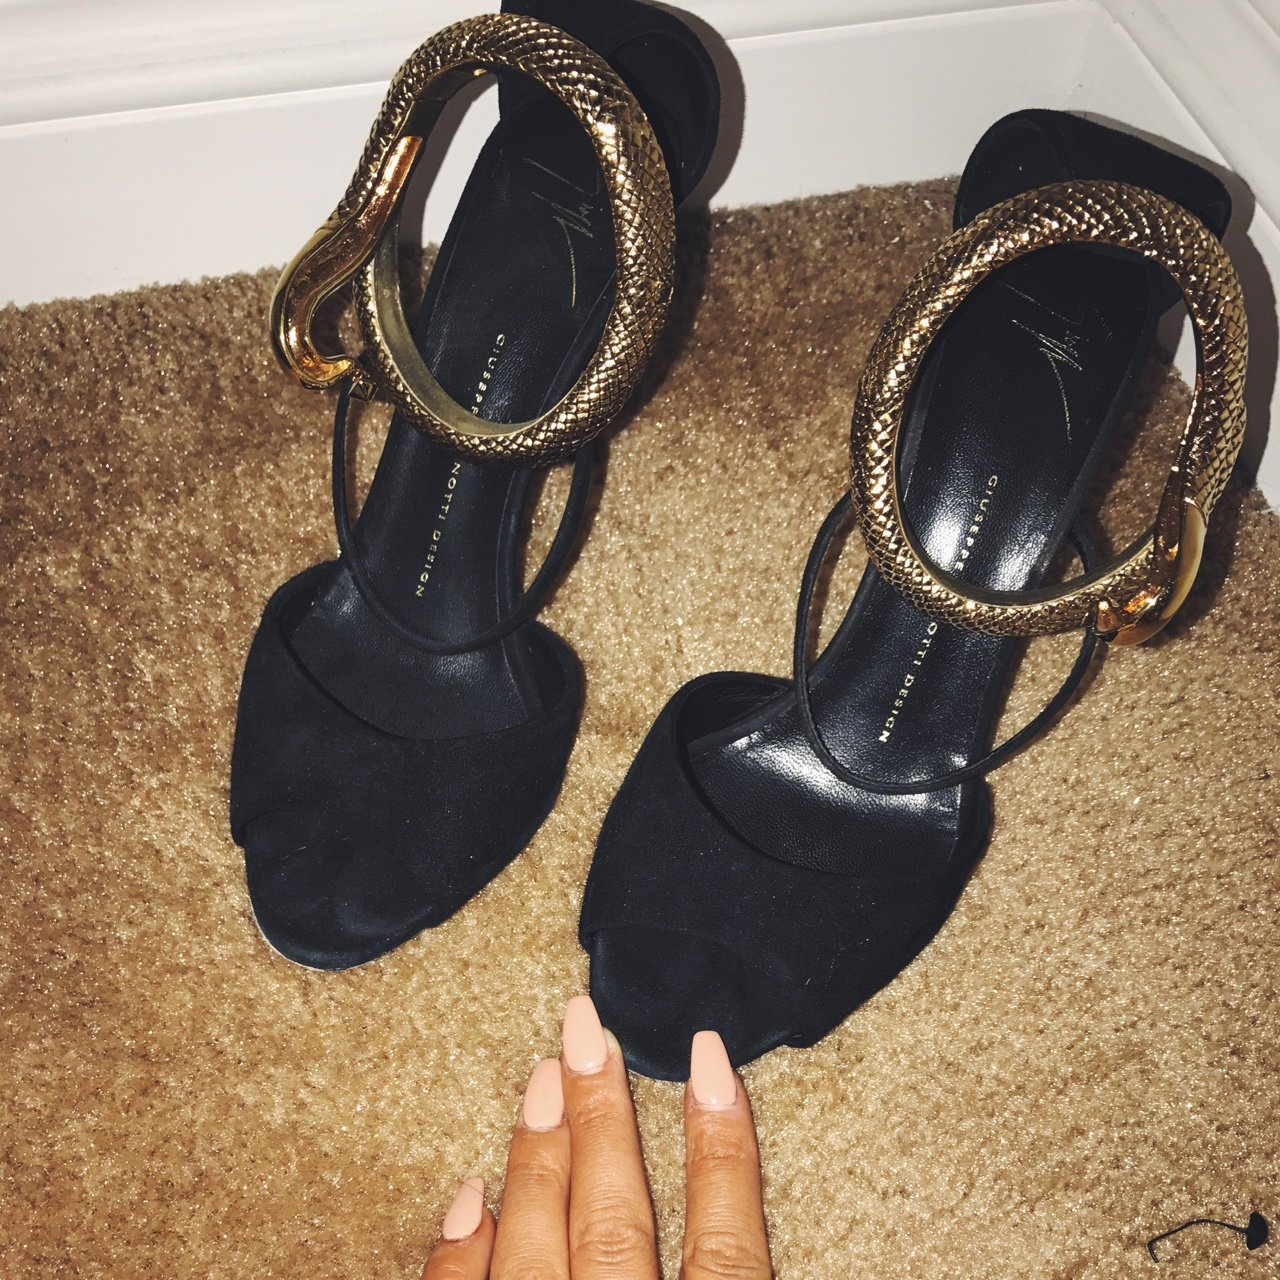 c32aaa36d06a6 @cecem92. 3 years ago. Los Angeles, CA, USA. Used Giuseppe Zanotti Women's  Black Nirvana Serpent Anklet Suede Sandals ...